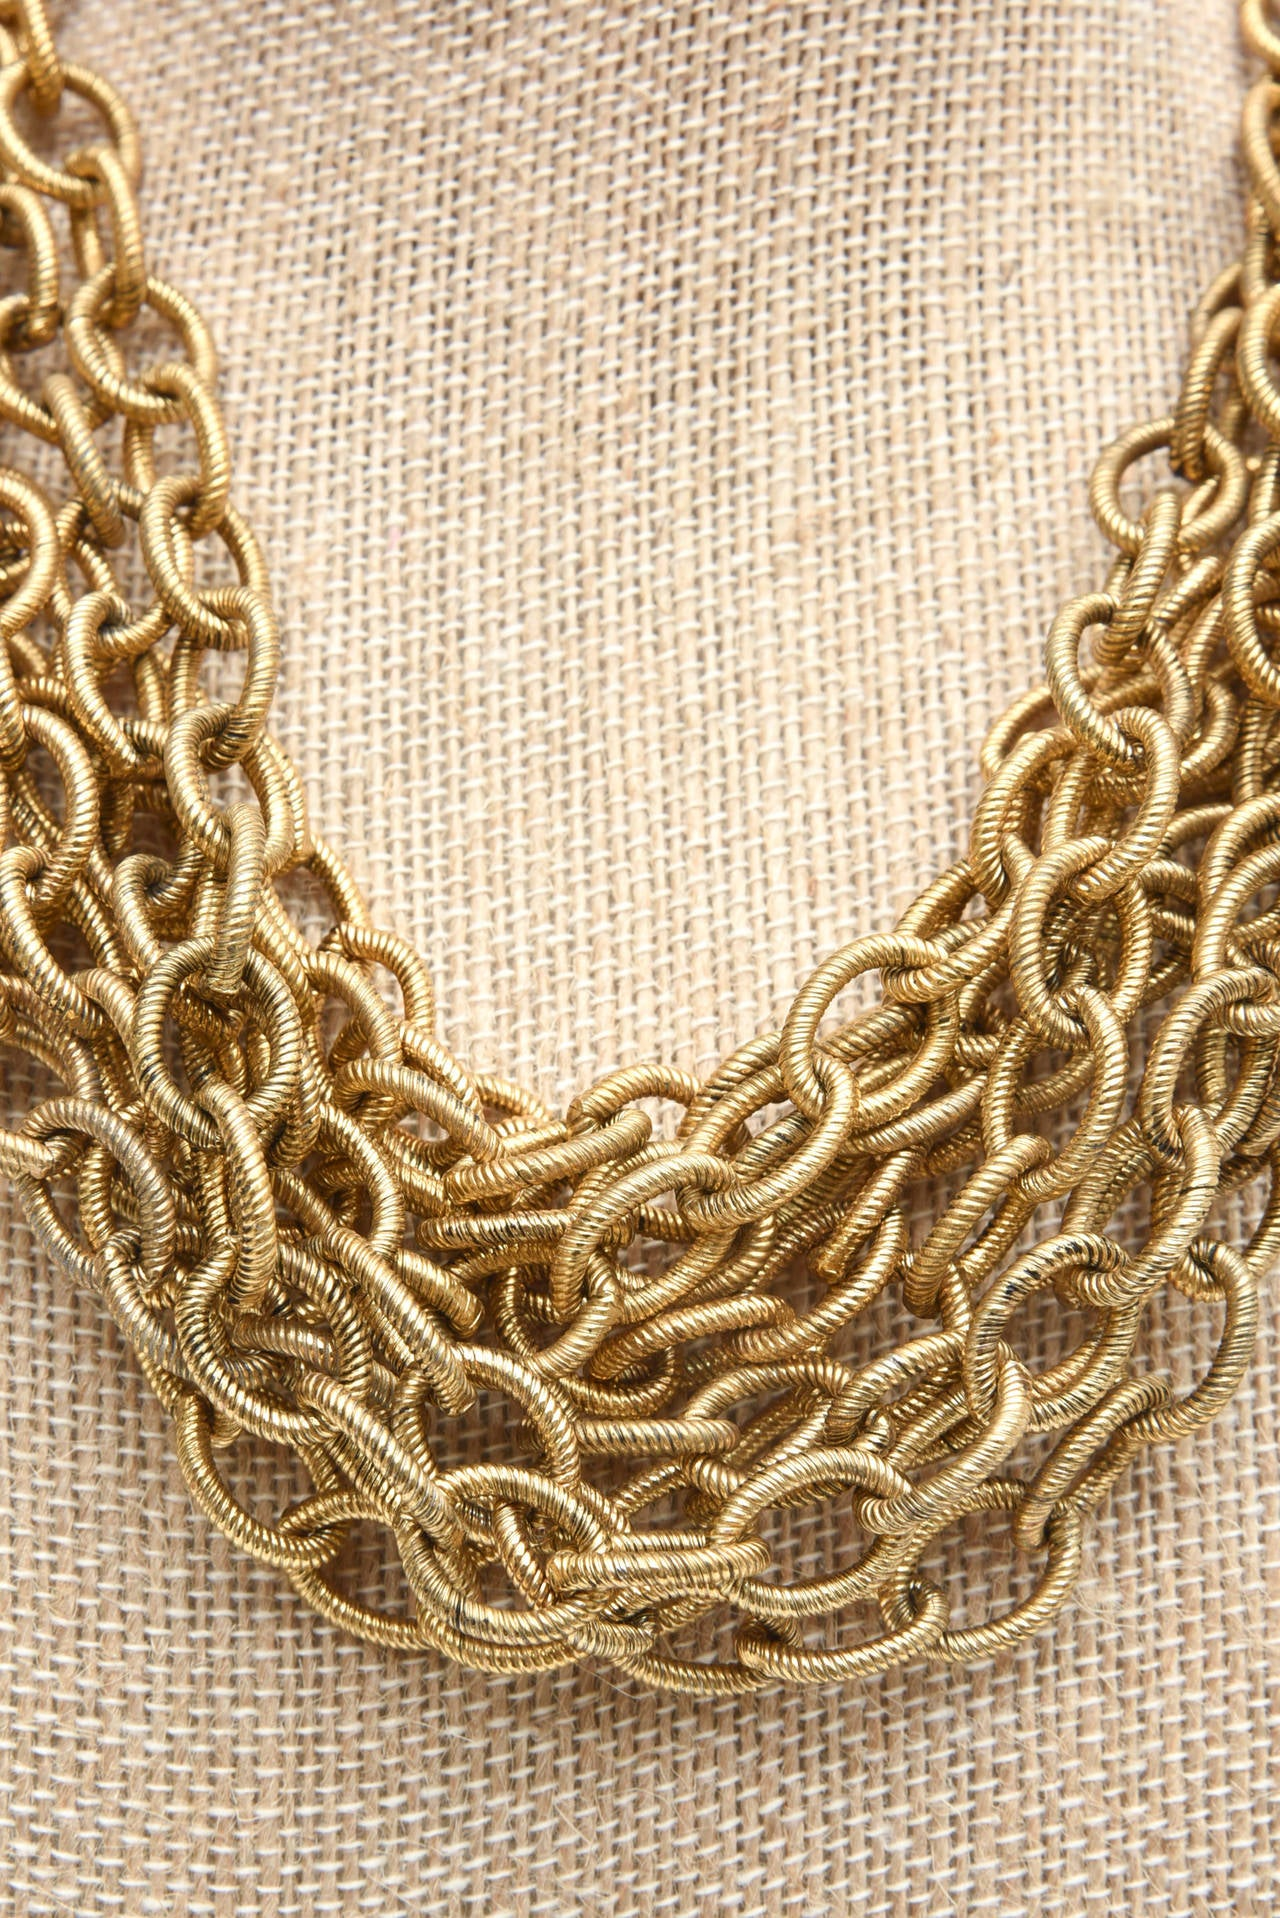 Women's  8 Row Chain Necklace Italian Vintage For Sale